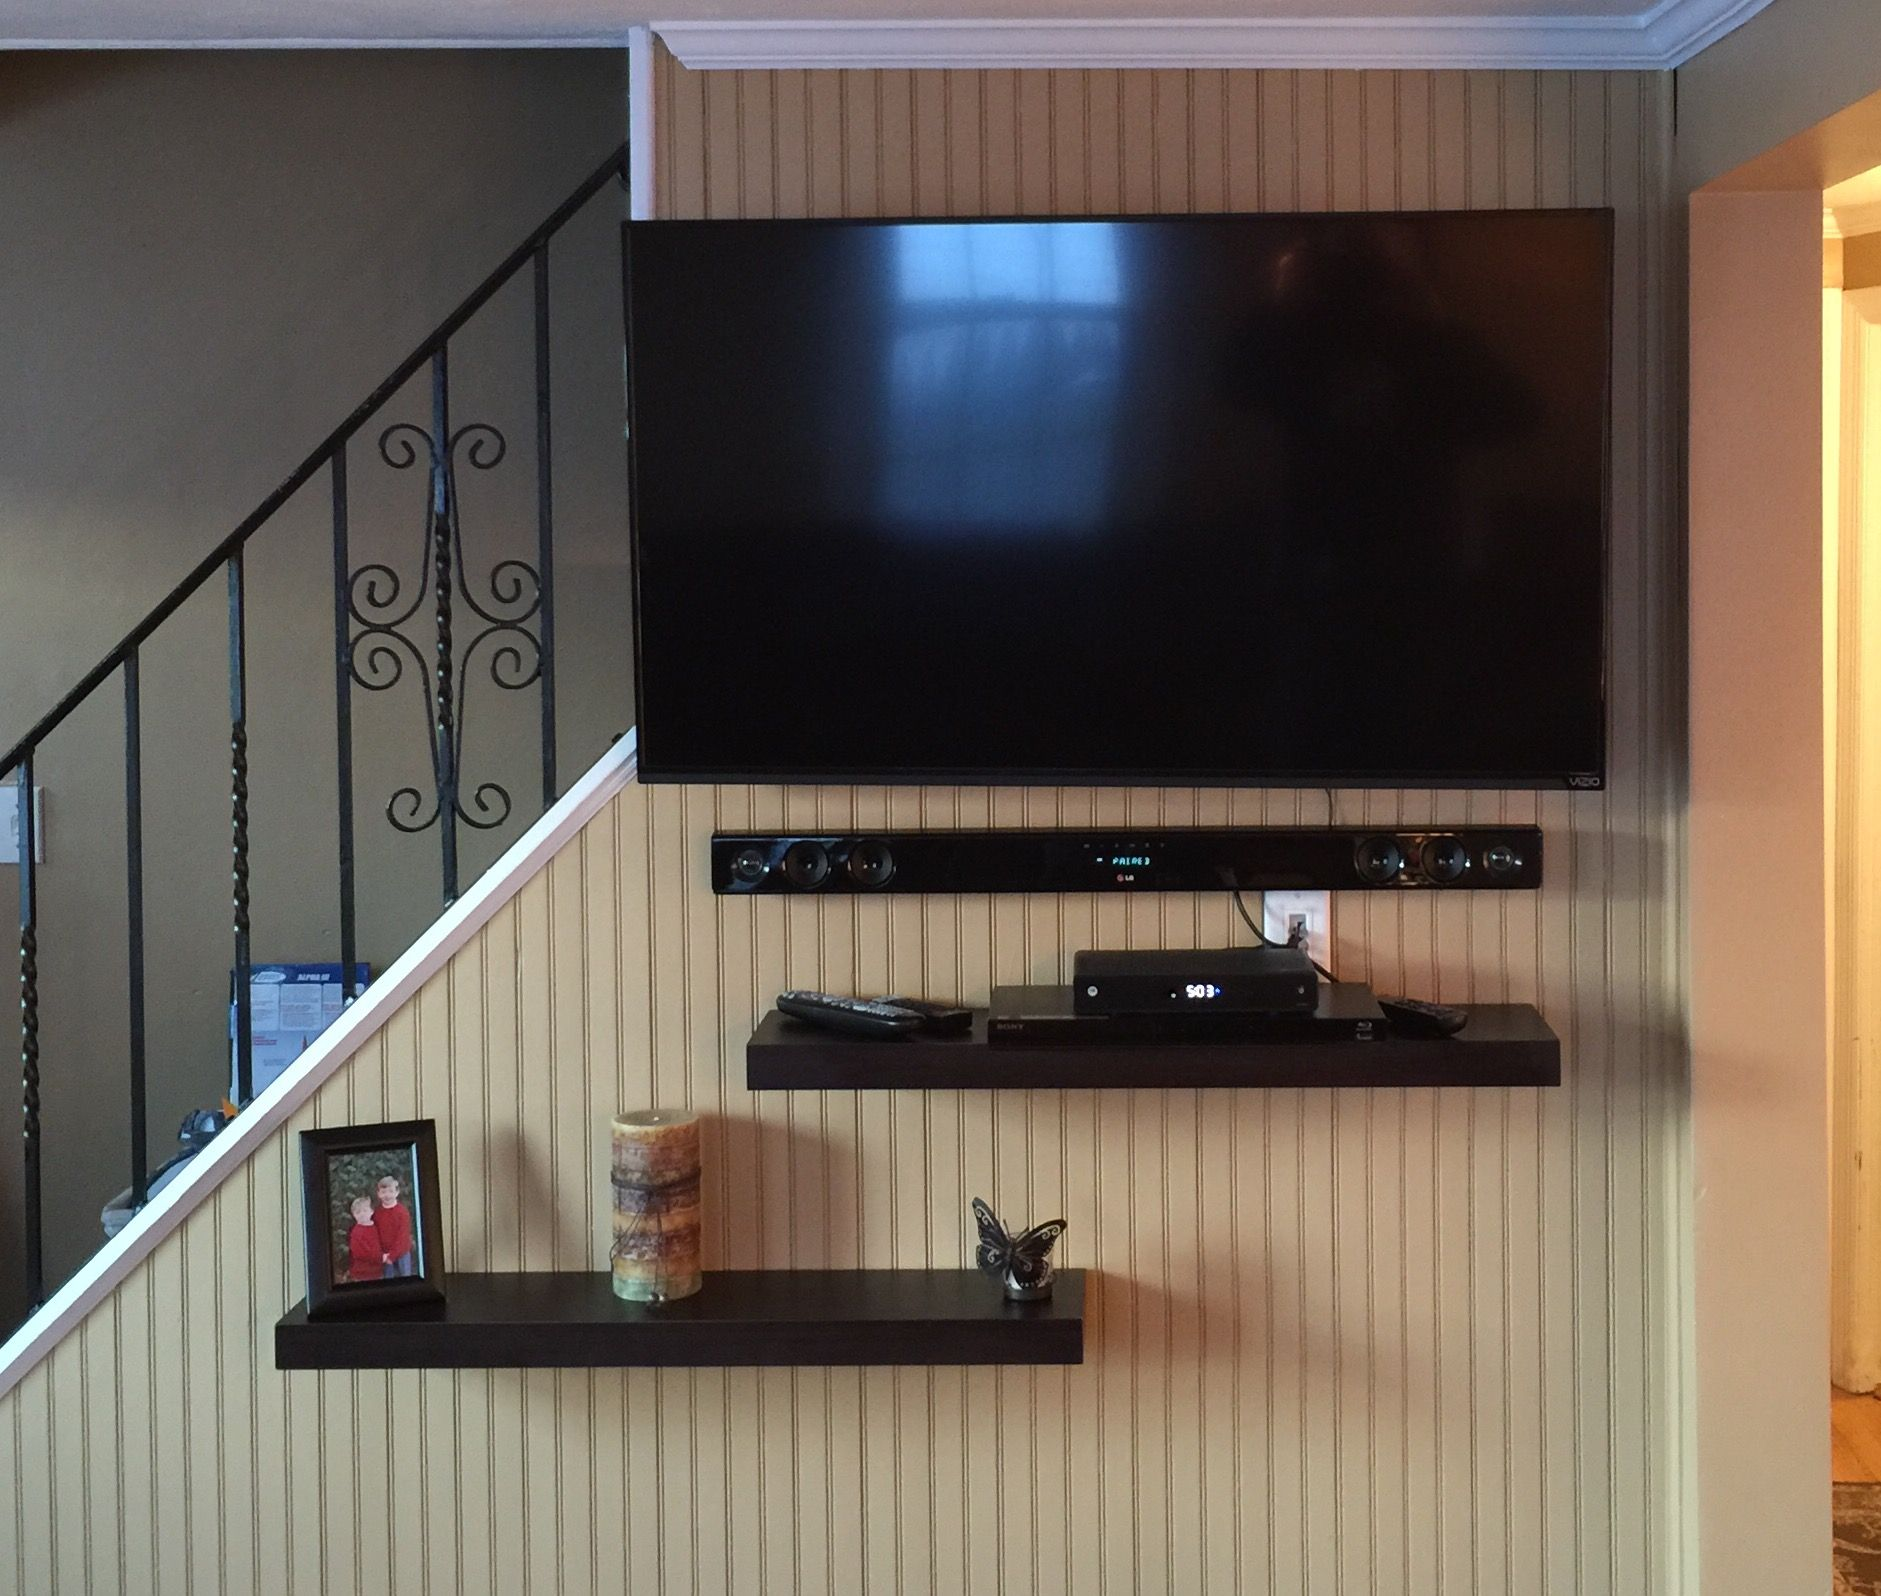 This Is The After Larger Tv Floating Shelves Sound Bar Mounted On